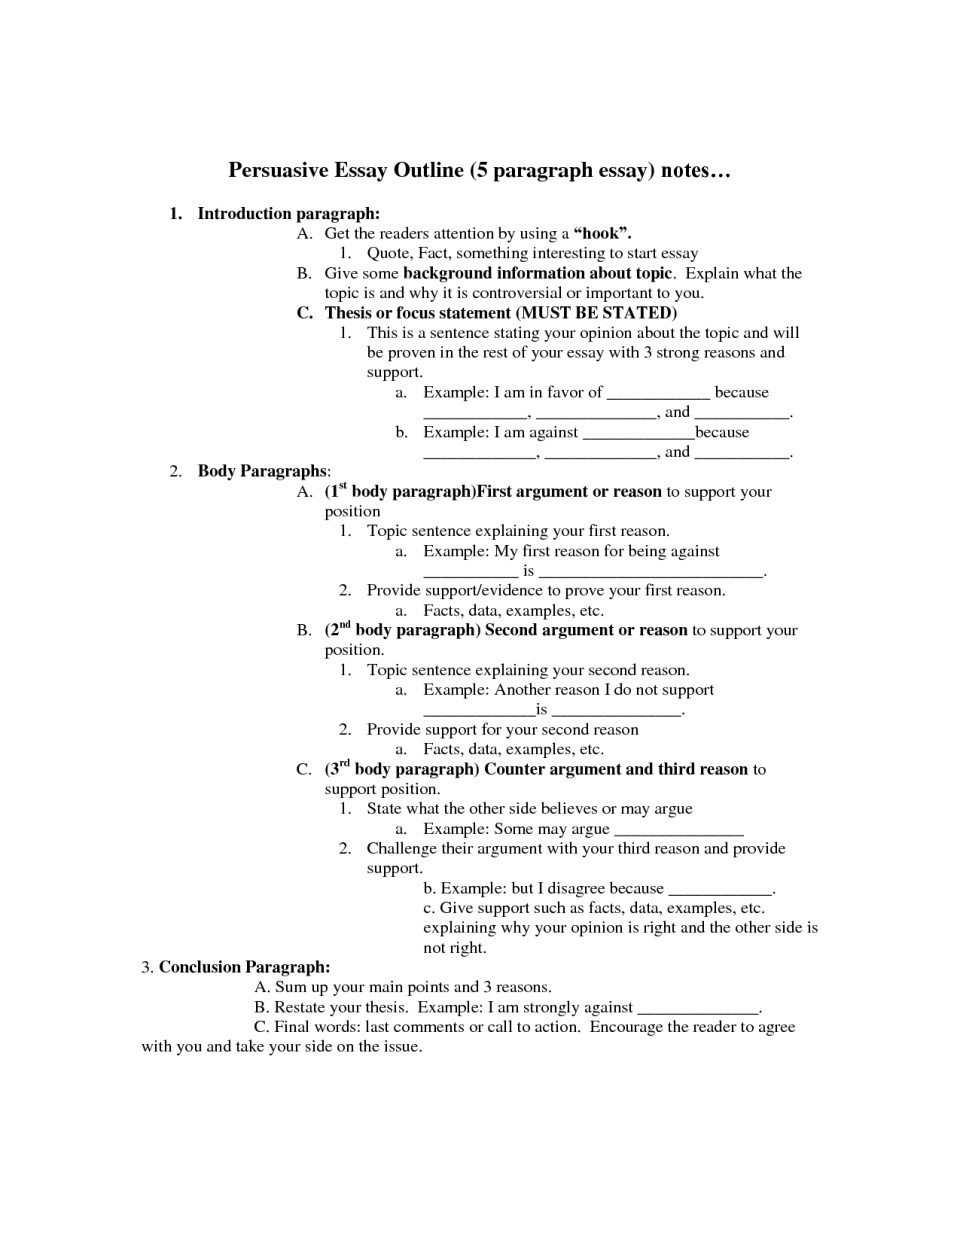 006 Persuasive Essay Outline Unbelievable Good Topics 5th Grade Format Middle School Example 960